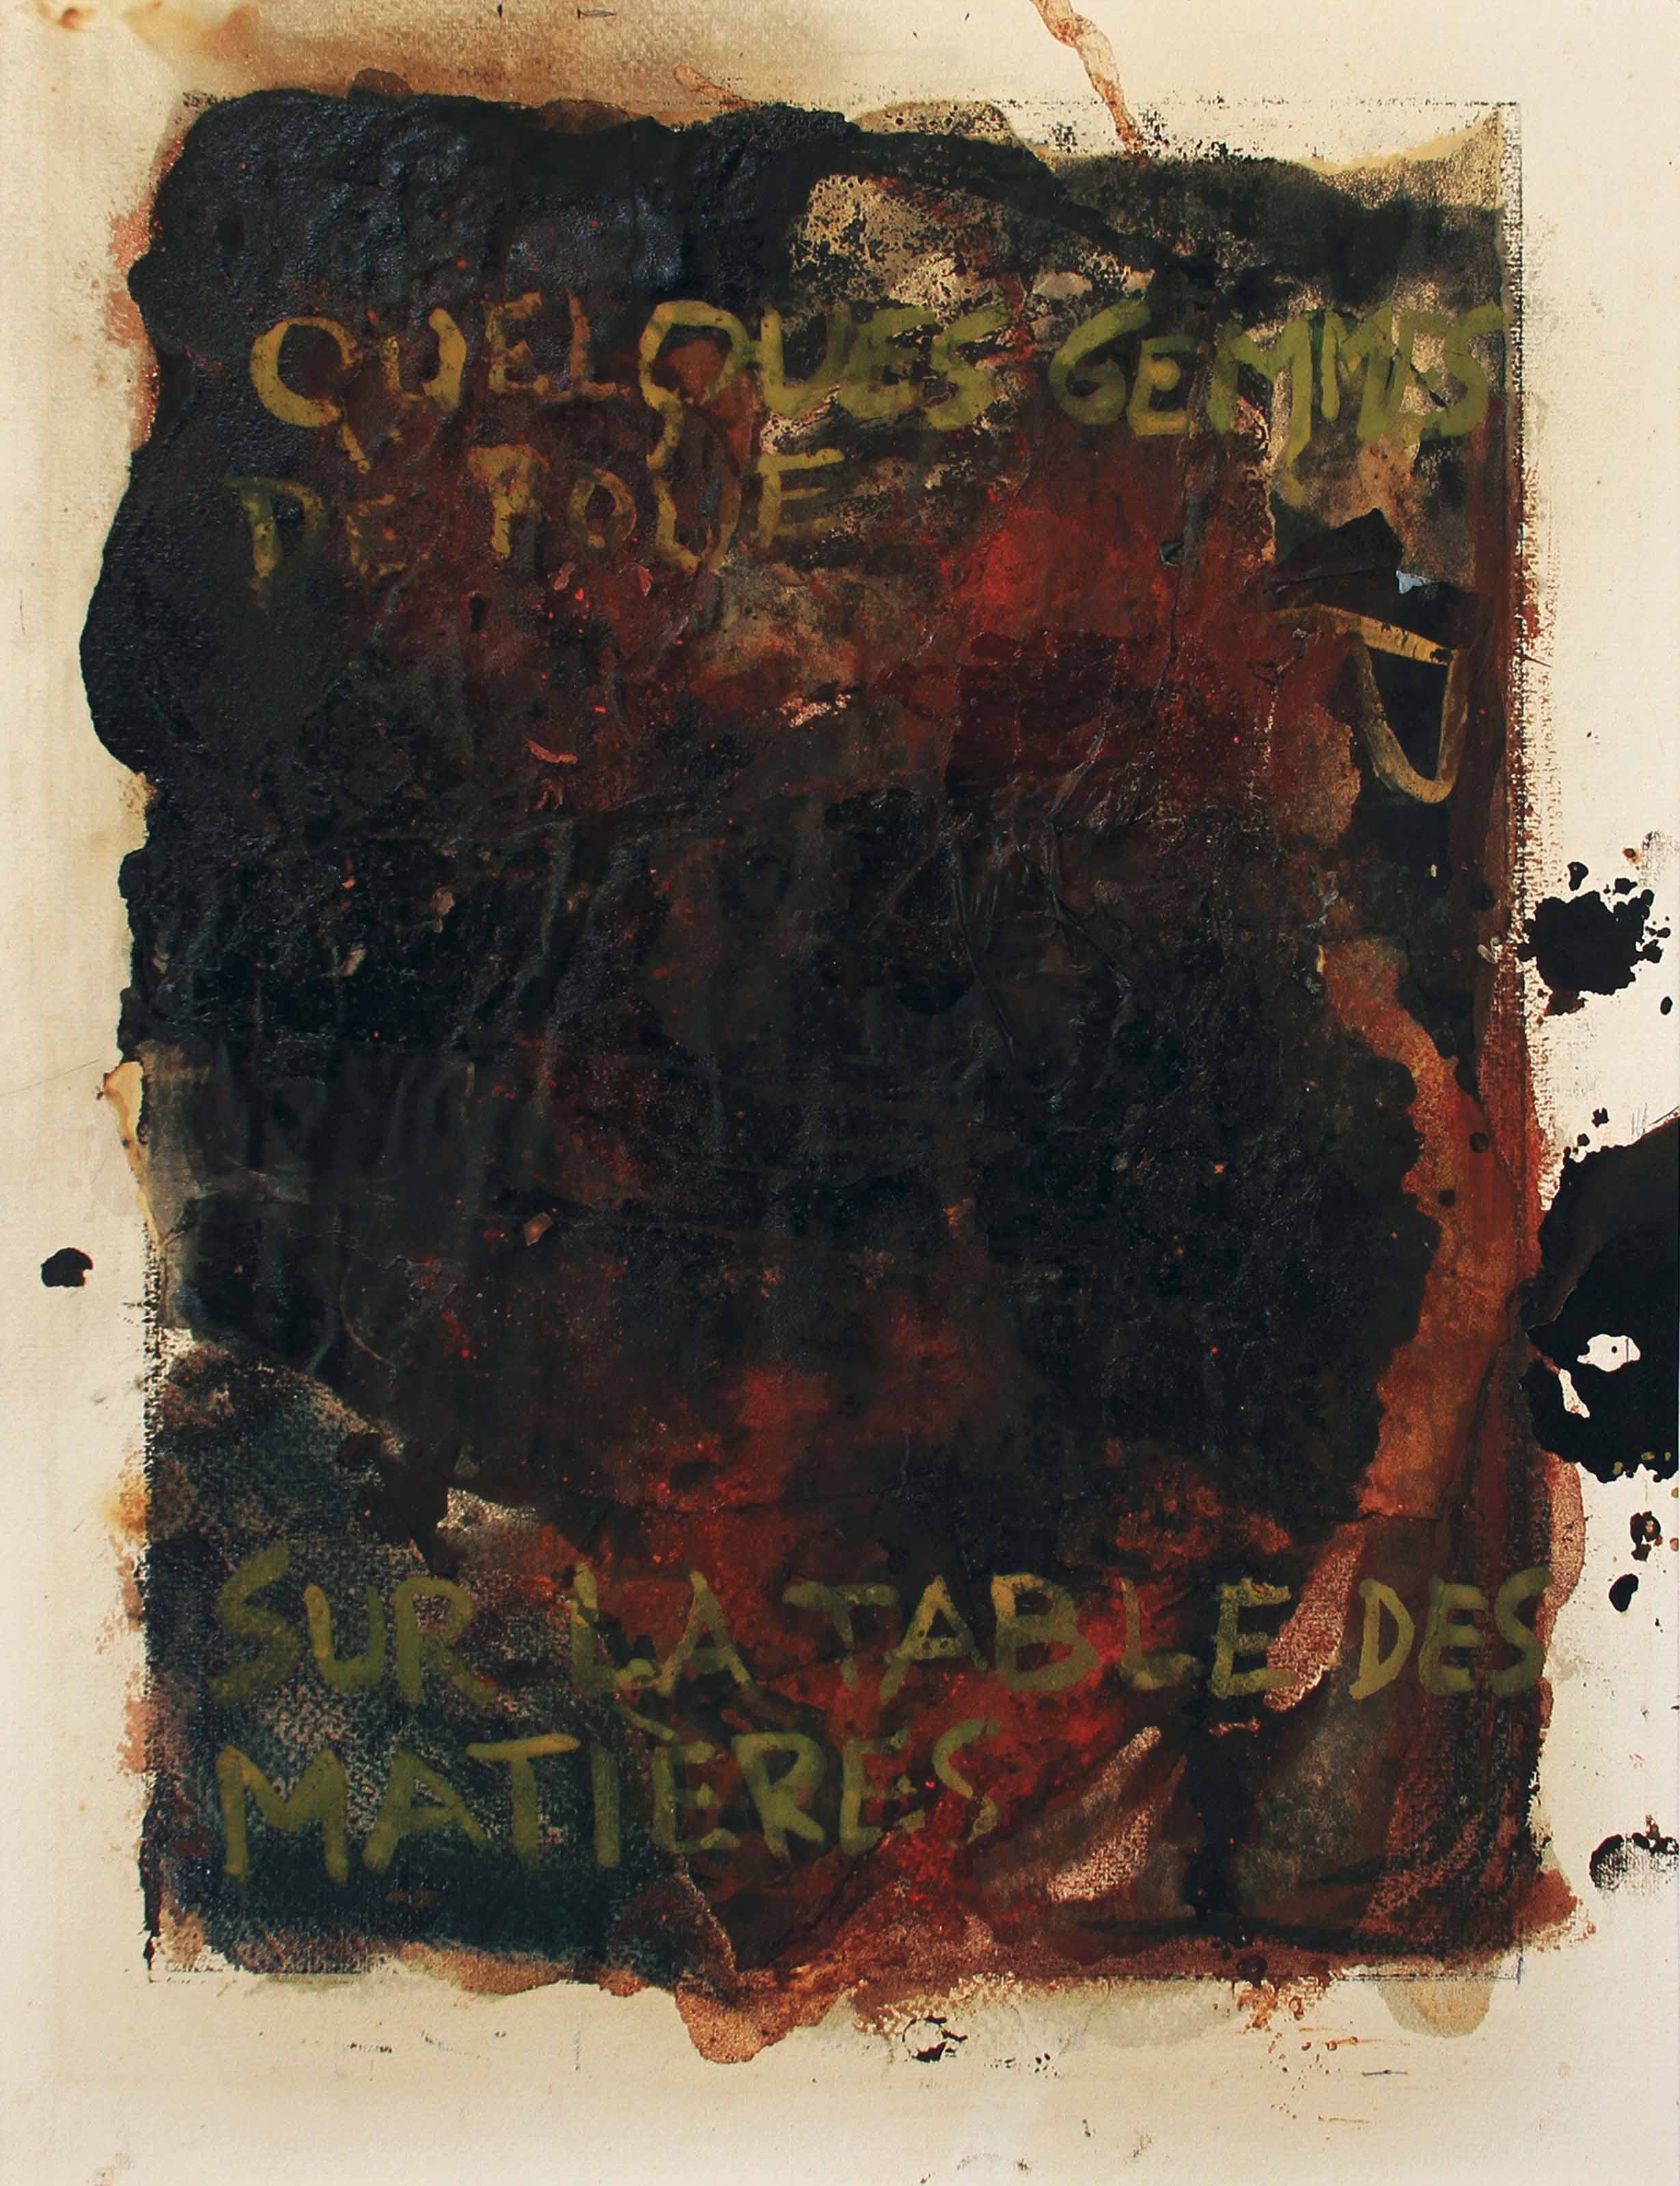 Quelques gemmes de boue sur la table des matières (Some gems of mud on the table of contents)